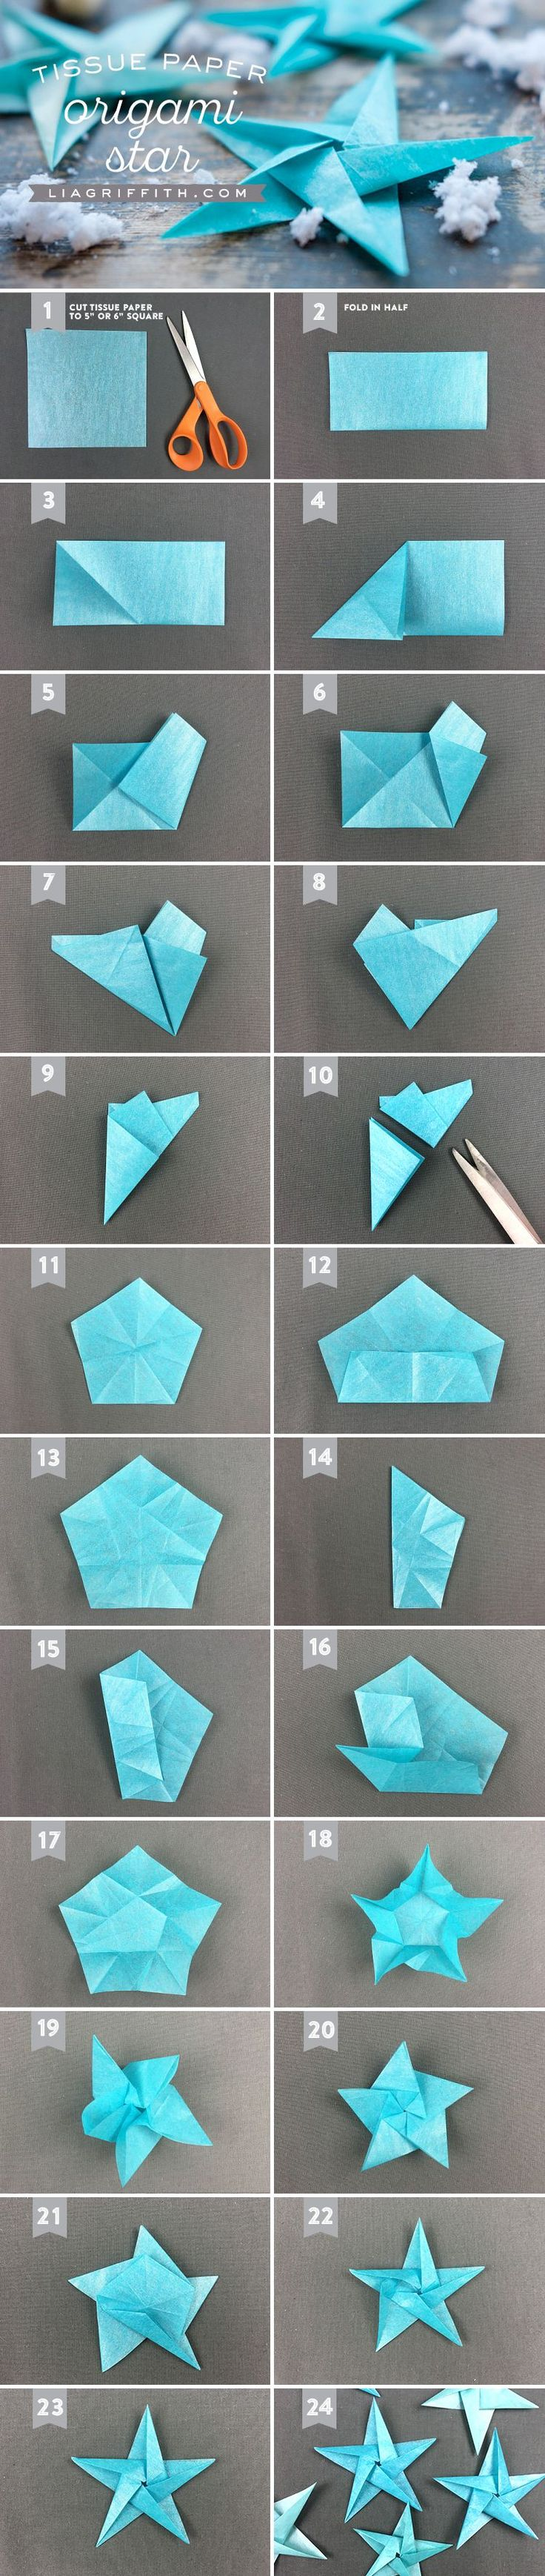 25 best ideas about origami step by step on pinterest for Cool things to make with paper for your room